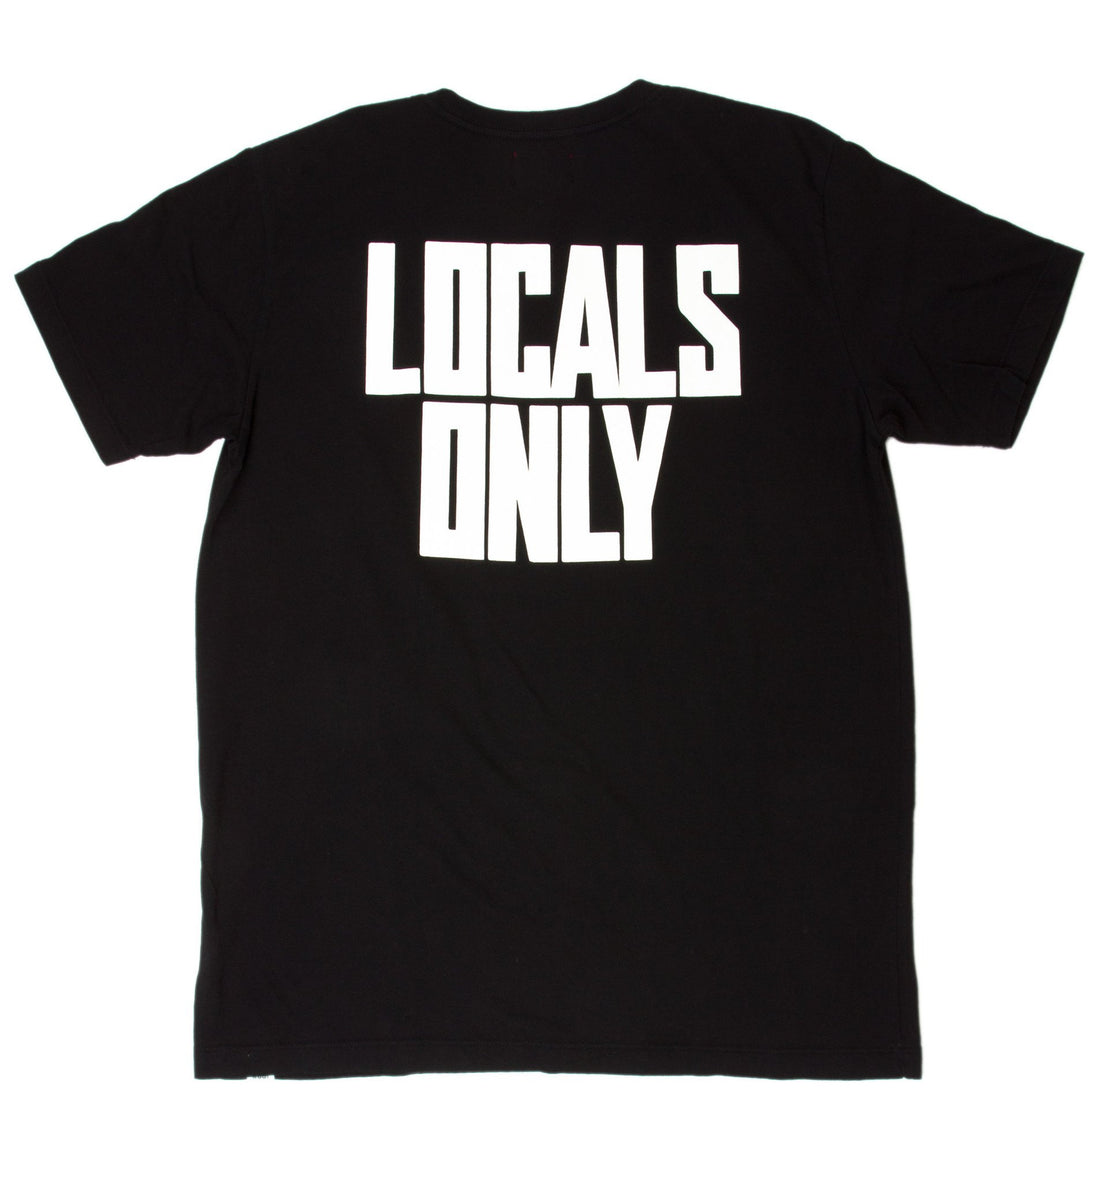 INR Locals Only Tee - Apparel: Men's: Graphic T-Shirts - Iron and Resin